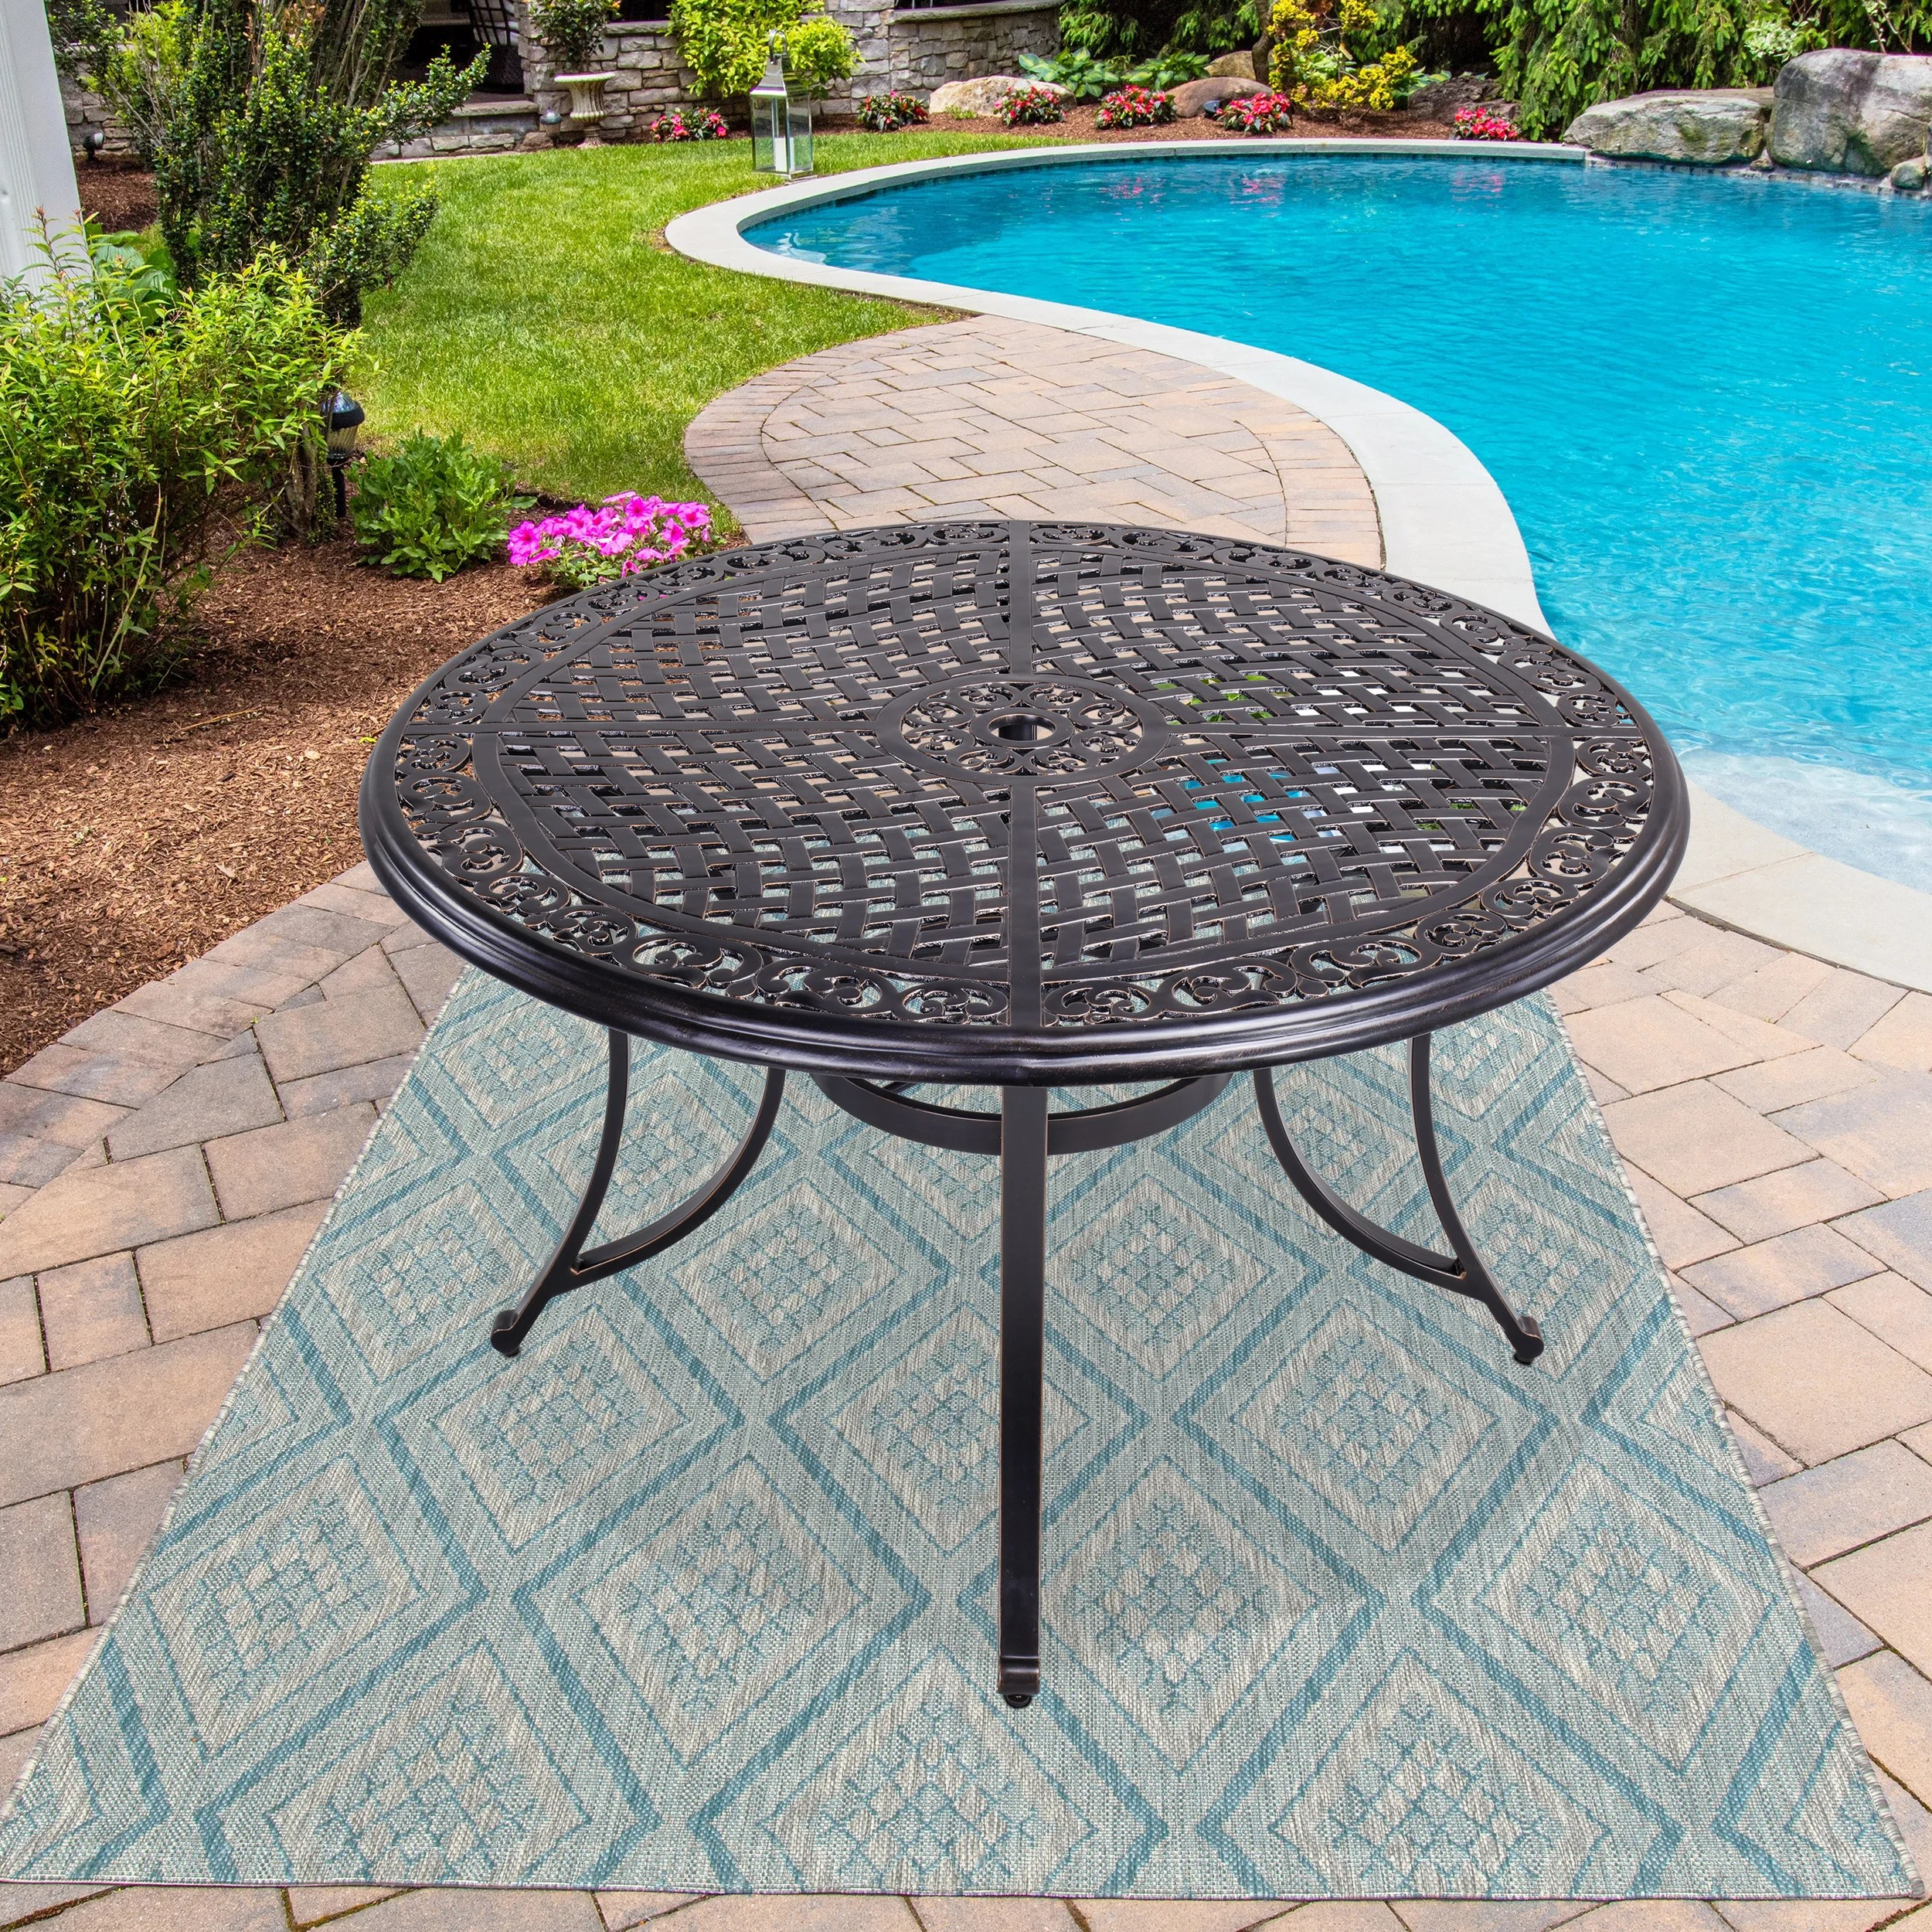 48 round patio dining table with umbrella hole aluminum top outdoor furniture